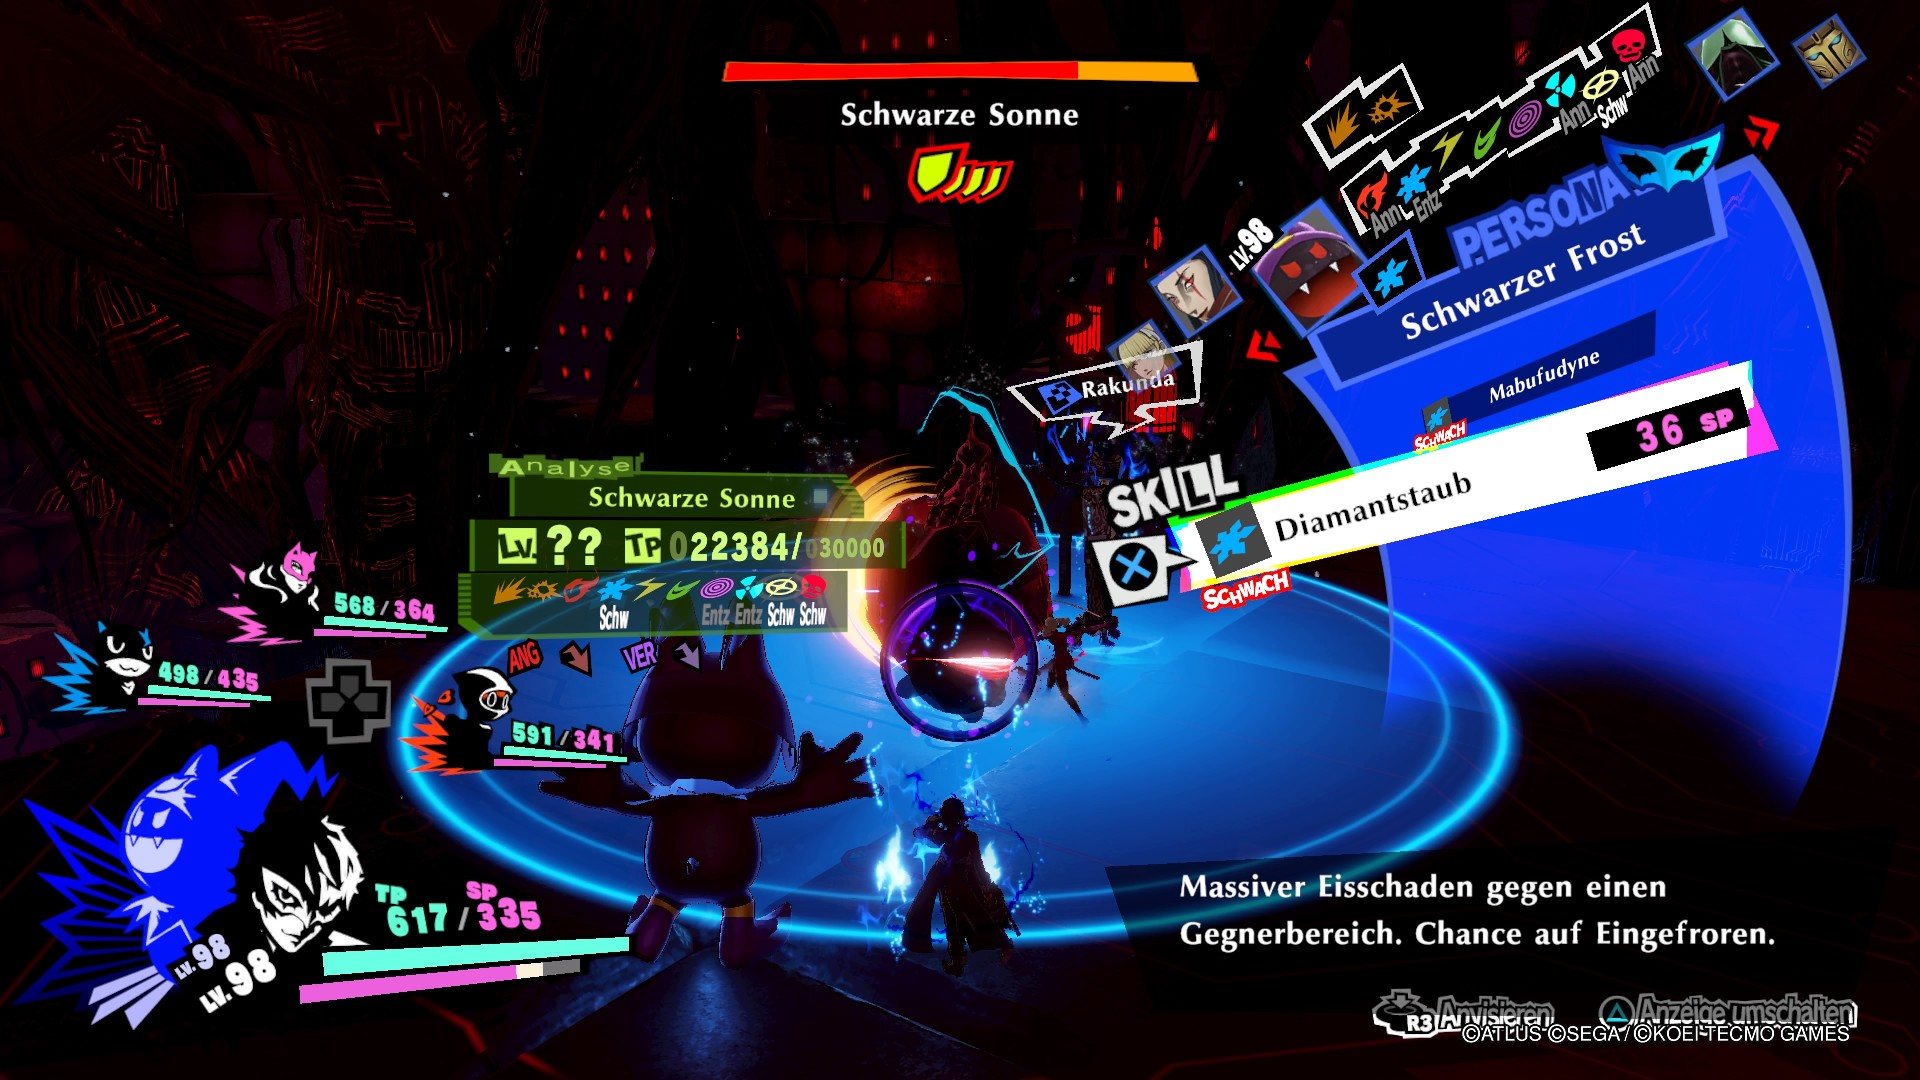 Persona 5 Strikers Dire Shadow Düstershatten Gefängnis des Abgrunds PS4 RPG JRPG Guide Schwarze Sonne